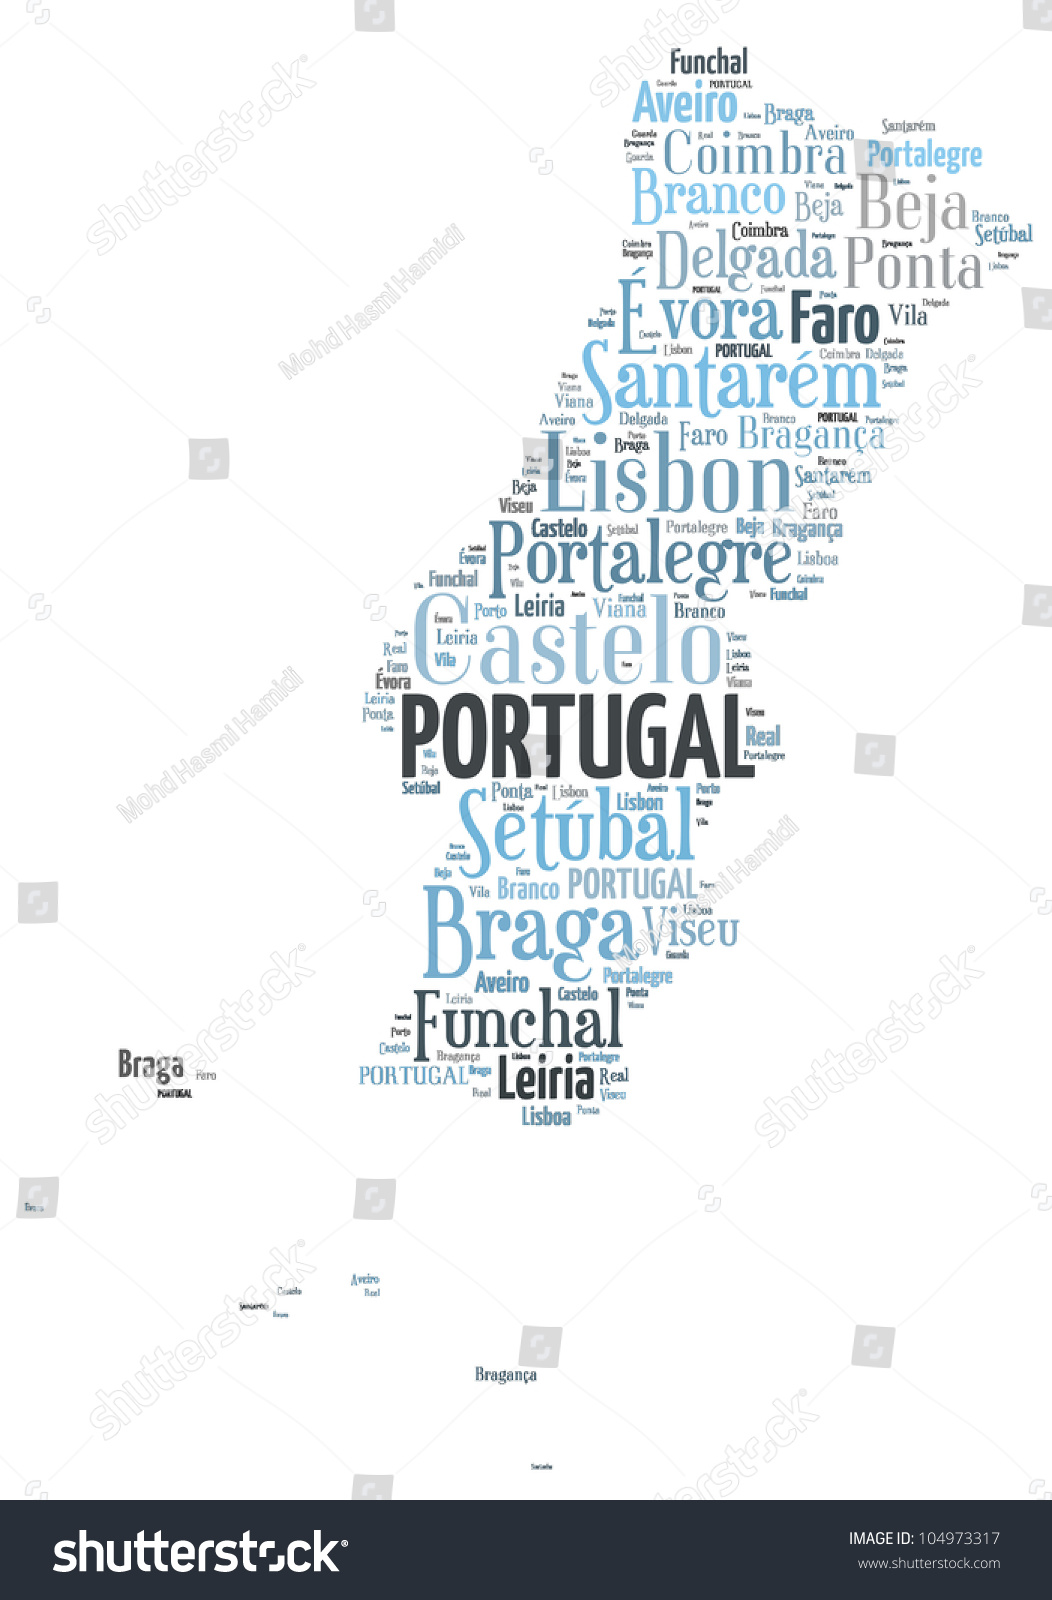 Portugal Map Words Cloud Major Cities Stock Illustration - Portugal map major cities